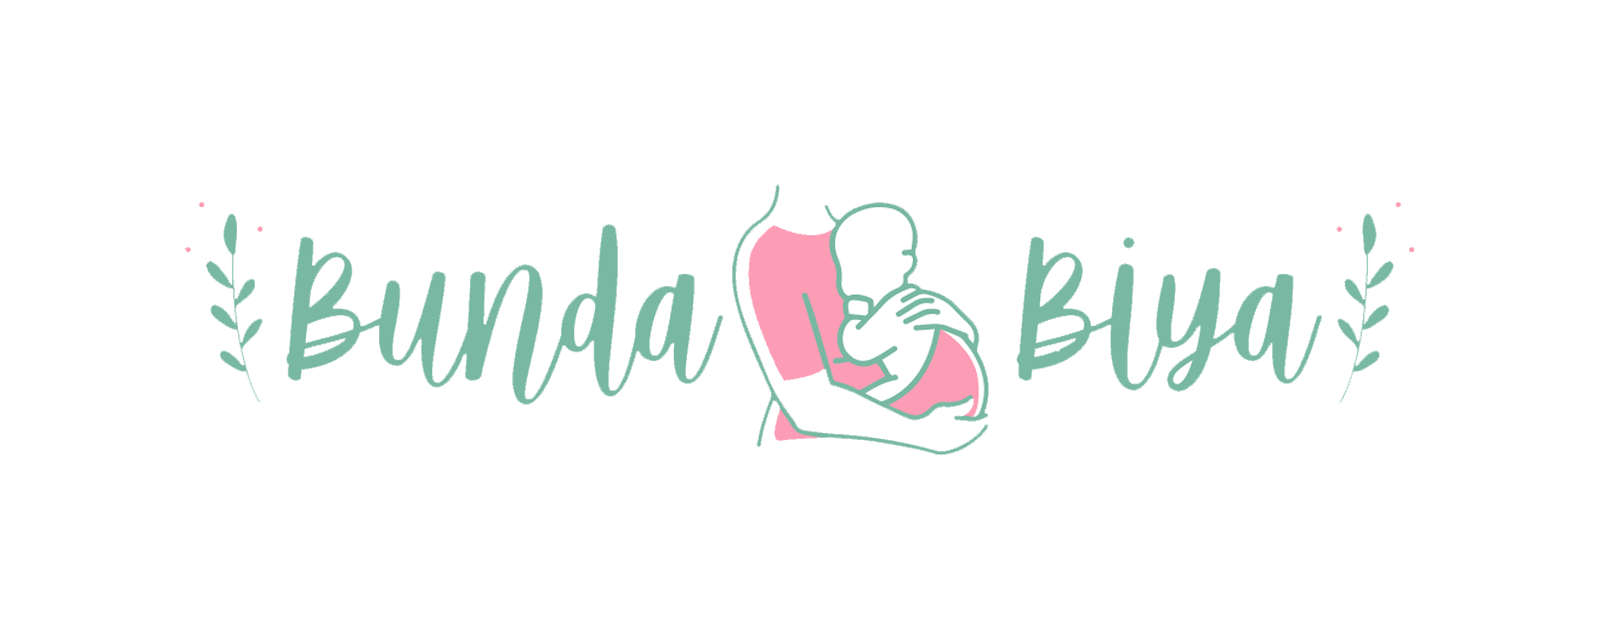 Bunda Biya: Parenting blogger Indonesia | Travel blogger | Lifestyle blogger